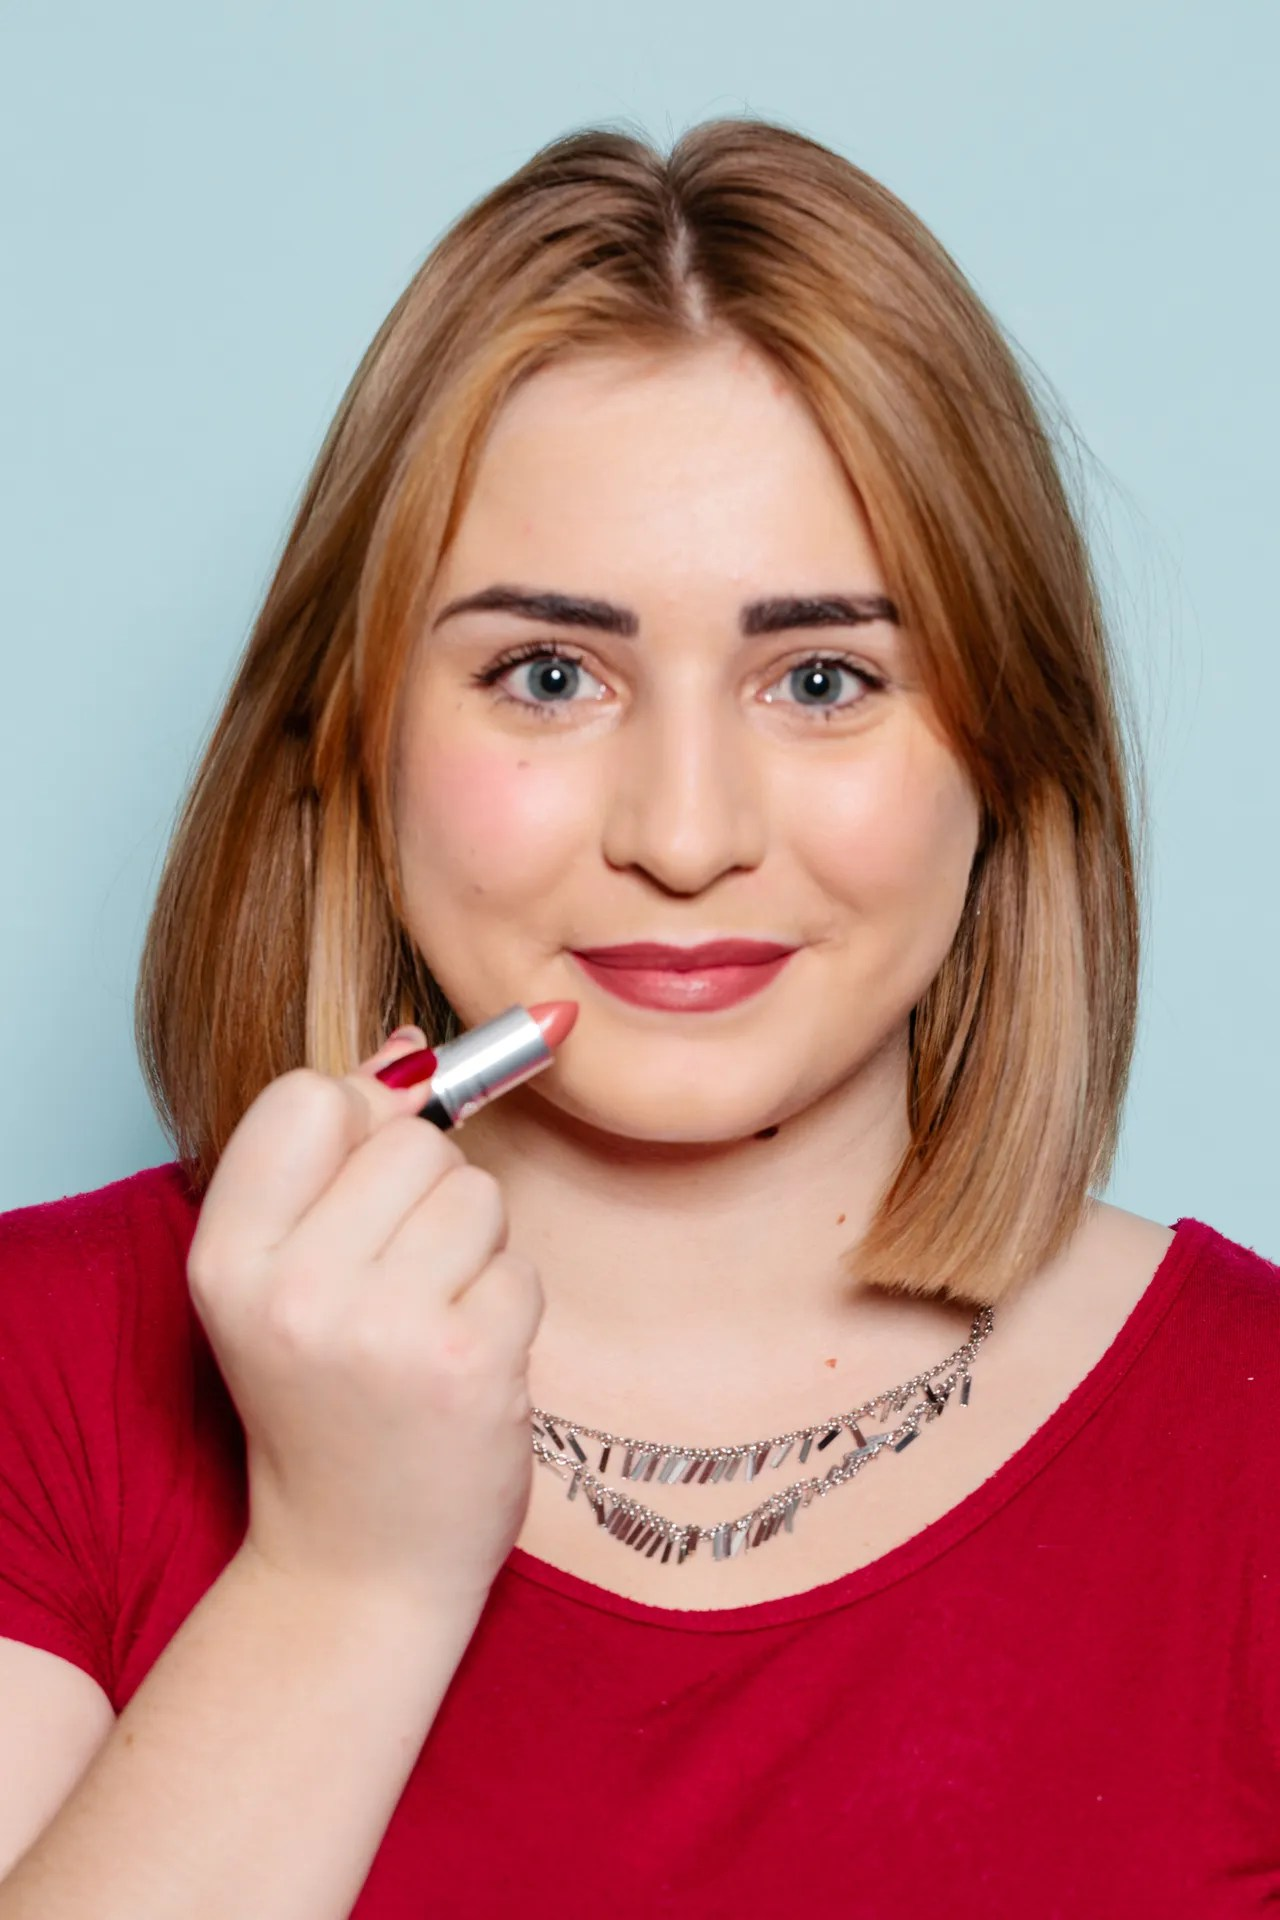 MAC Whirl Lipstick Pictures On Women With Different Skin